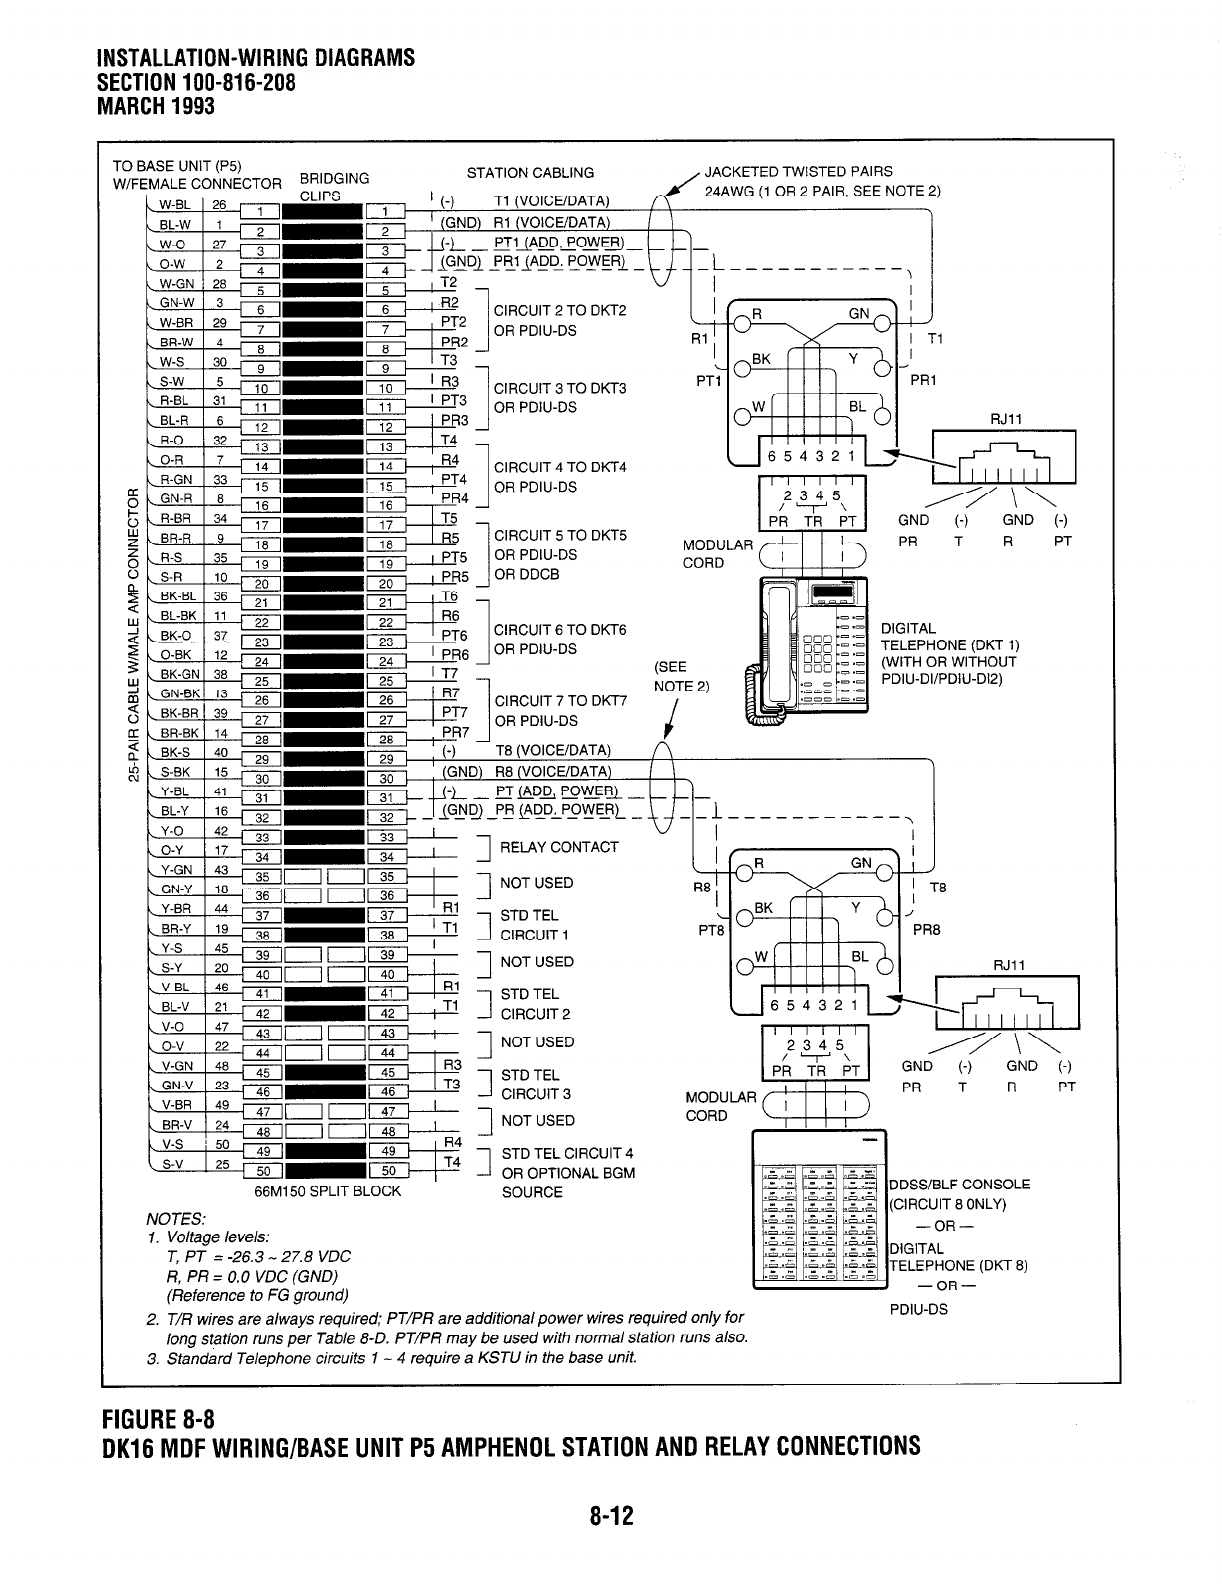 52c30e44 eb3d 42ea a7fe 5e185b64a3b0 bgce page 206 of toshiba cell phone strata dk16 user guide Home Phone Wiring Diagram at mr168.co